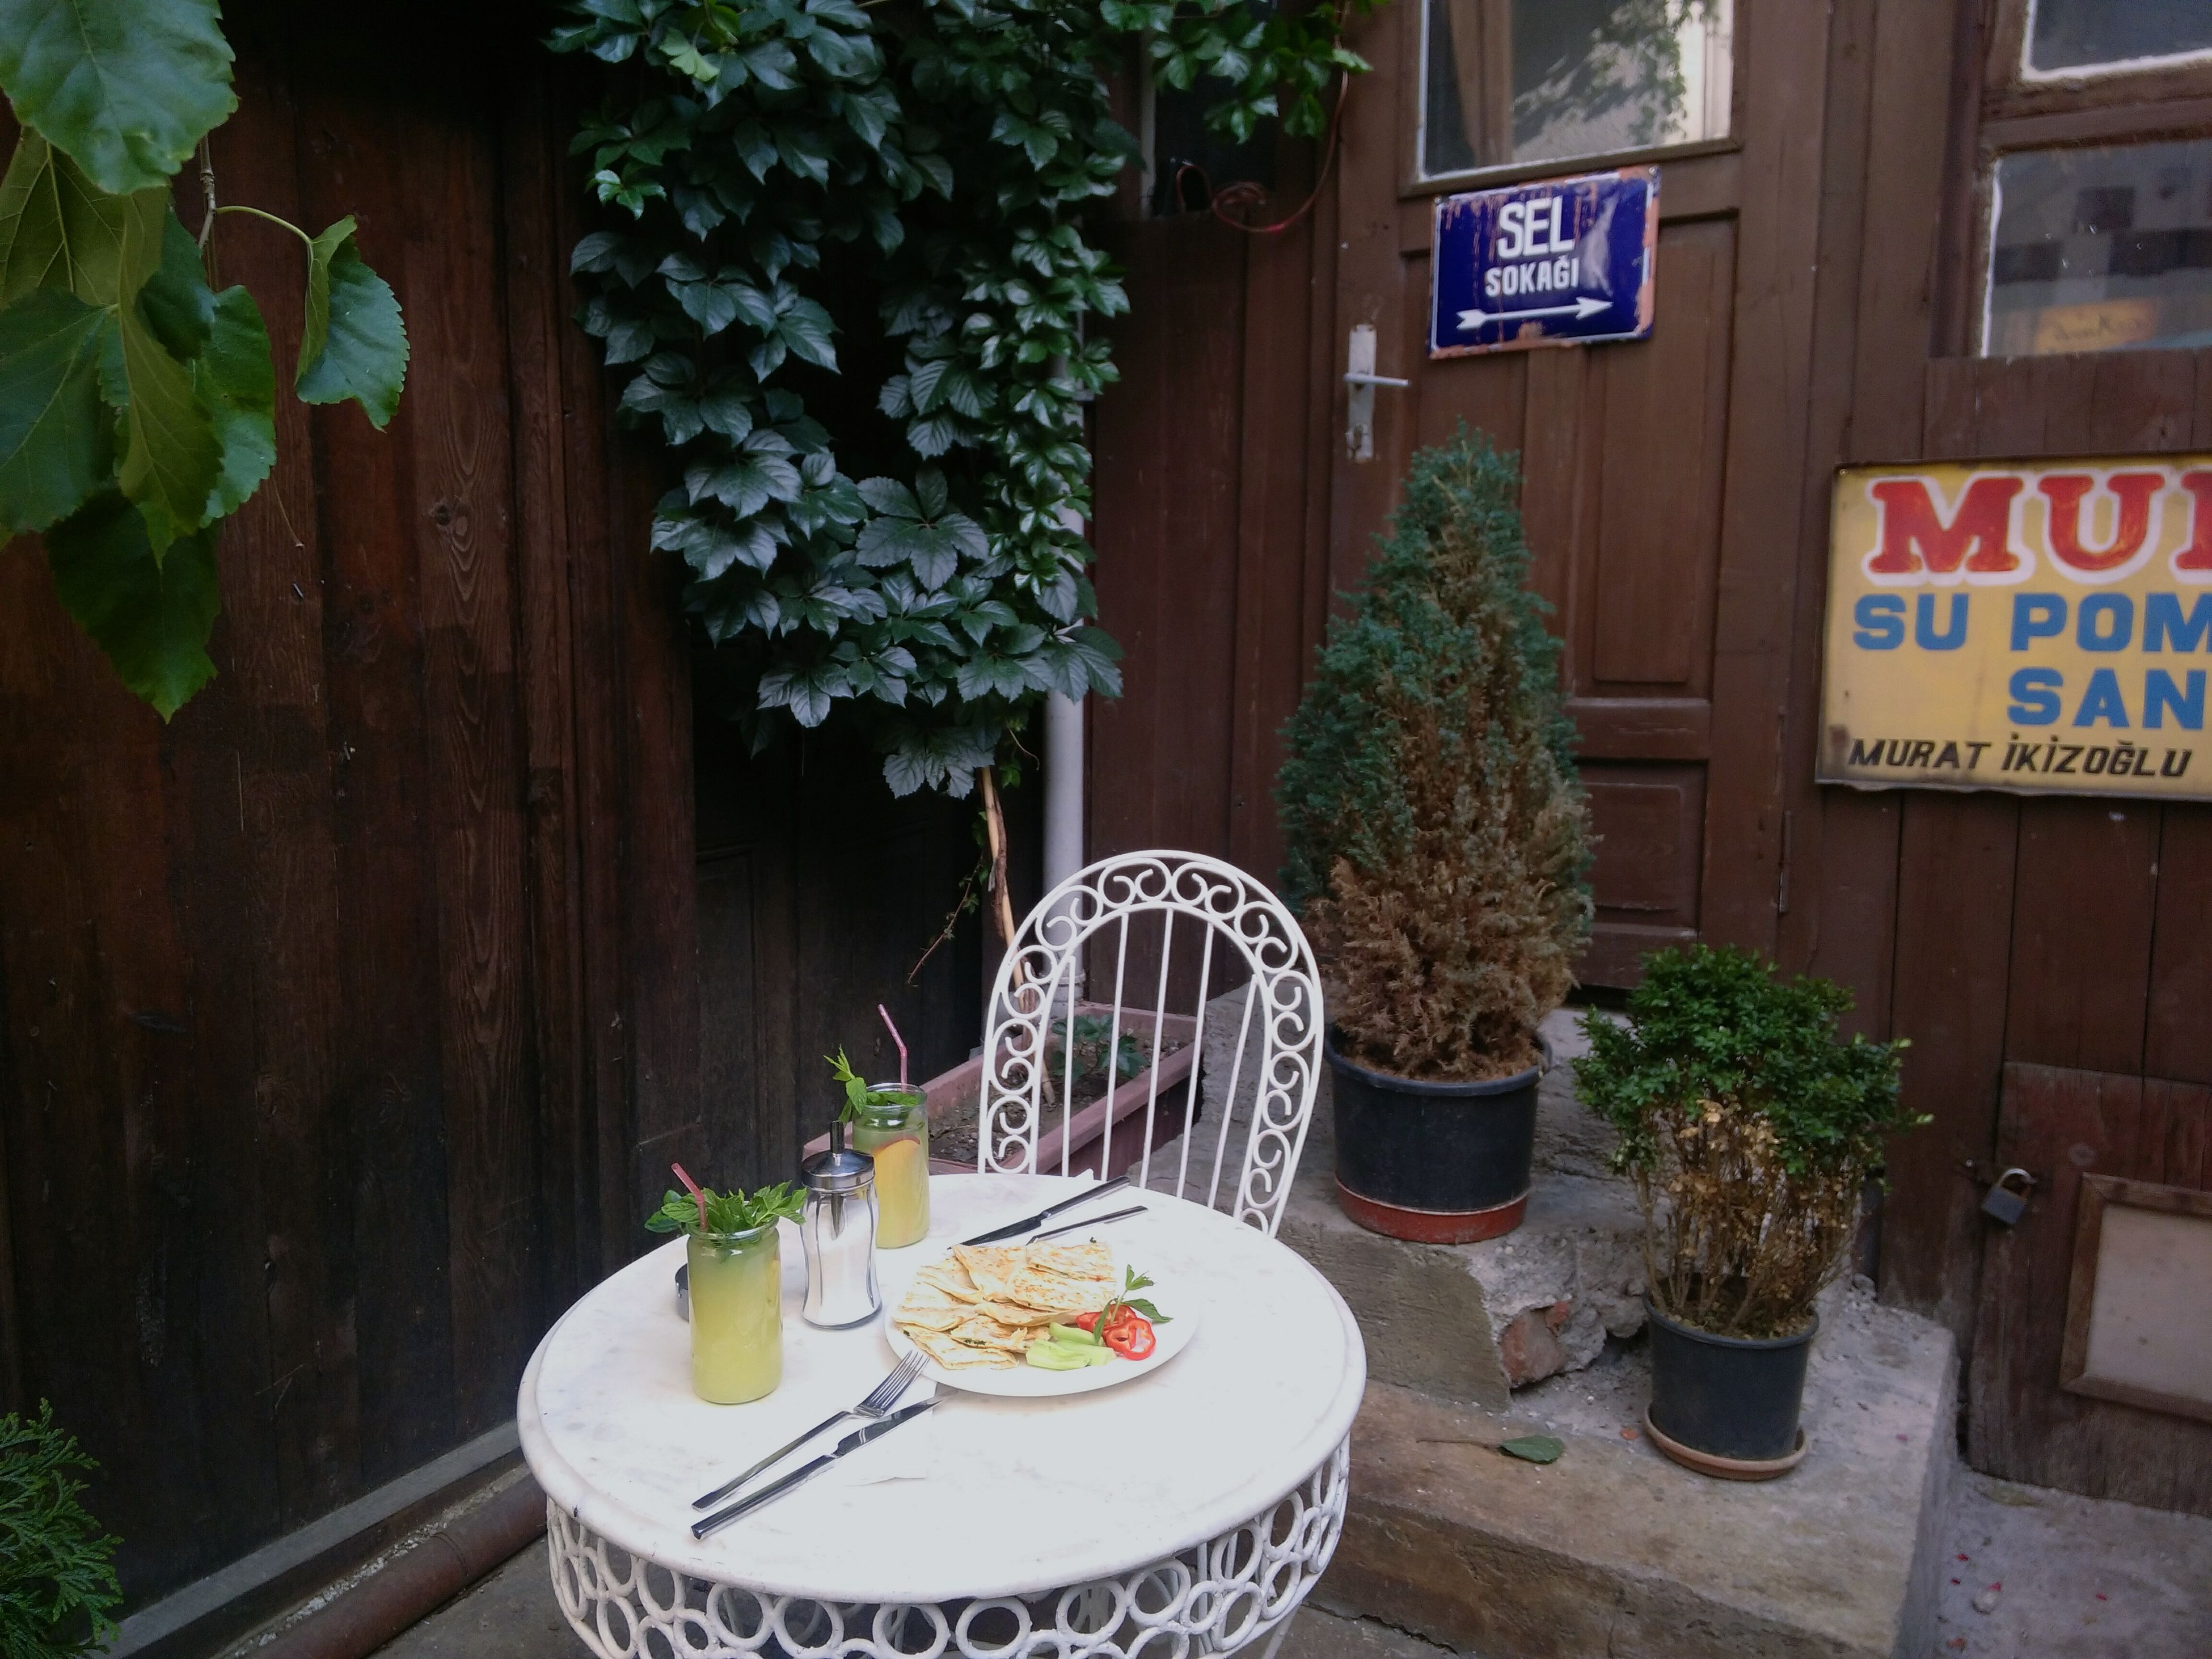 food and drink, plant, table, potted plant, leaf, growth, place setting, pot plant, freshness, green color, no people, large group of objects